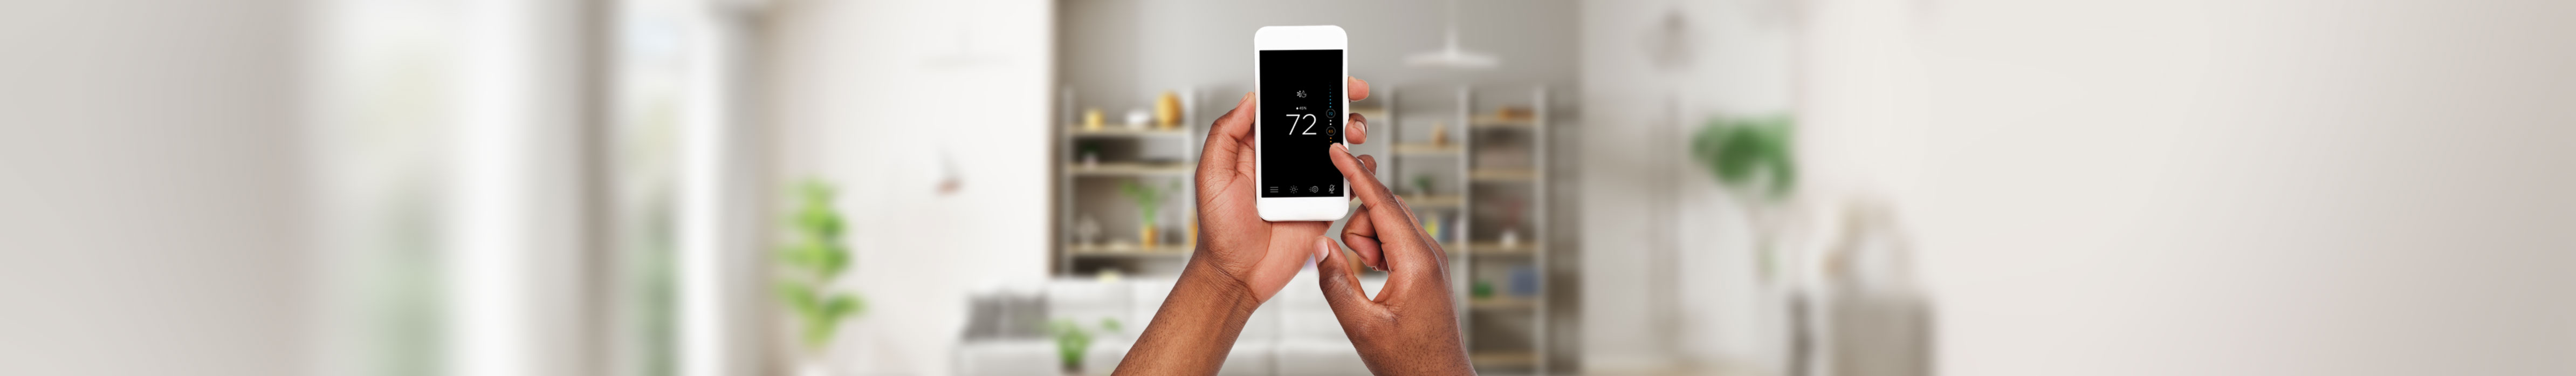 Smart-Device-Banner-Setting-thermostat-with-iphone